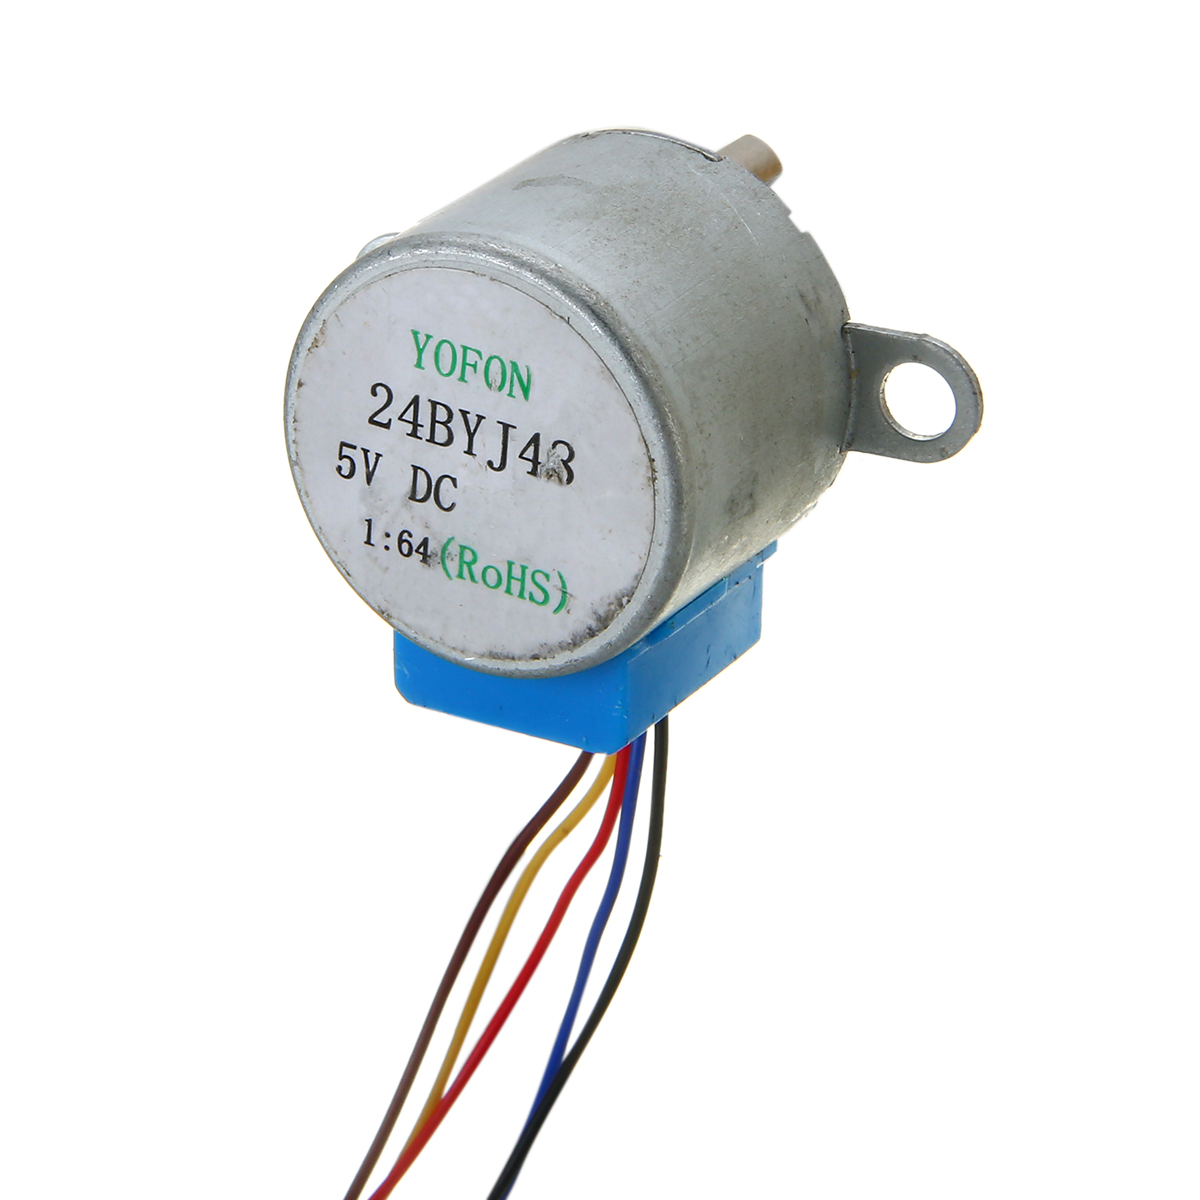 24BYJ48 Gear Stepper Motor Micro DC 5V Reduction Stepper Motor 4 Phase 5 Wire Stepper Motor Reduction Ratio 1/64 For Arduino